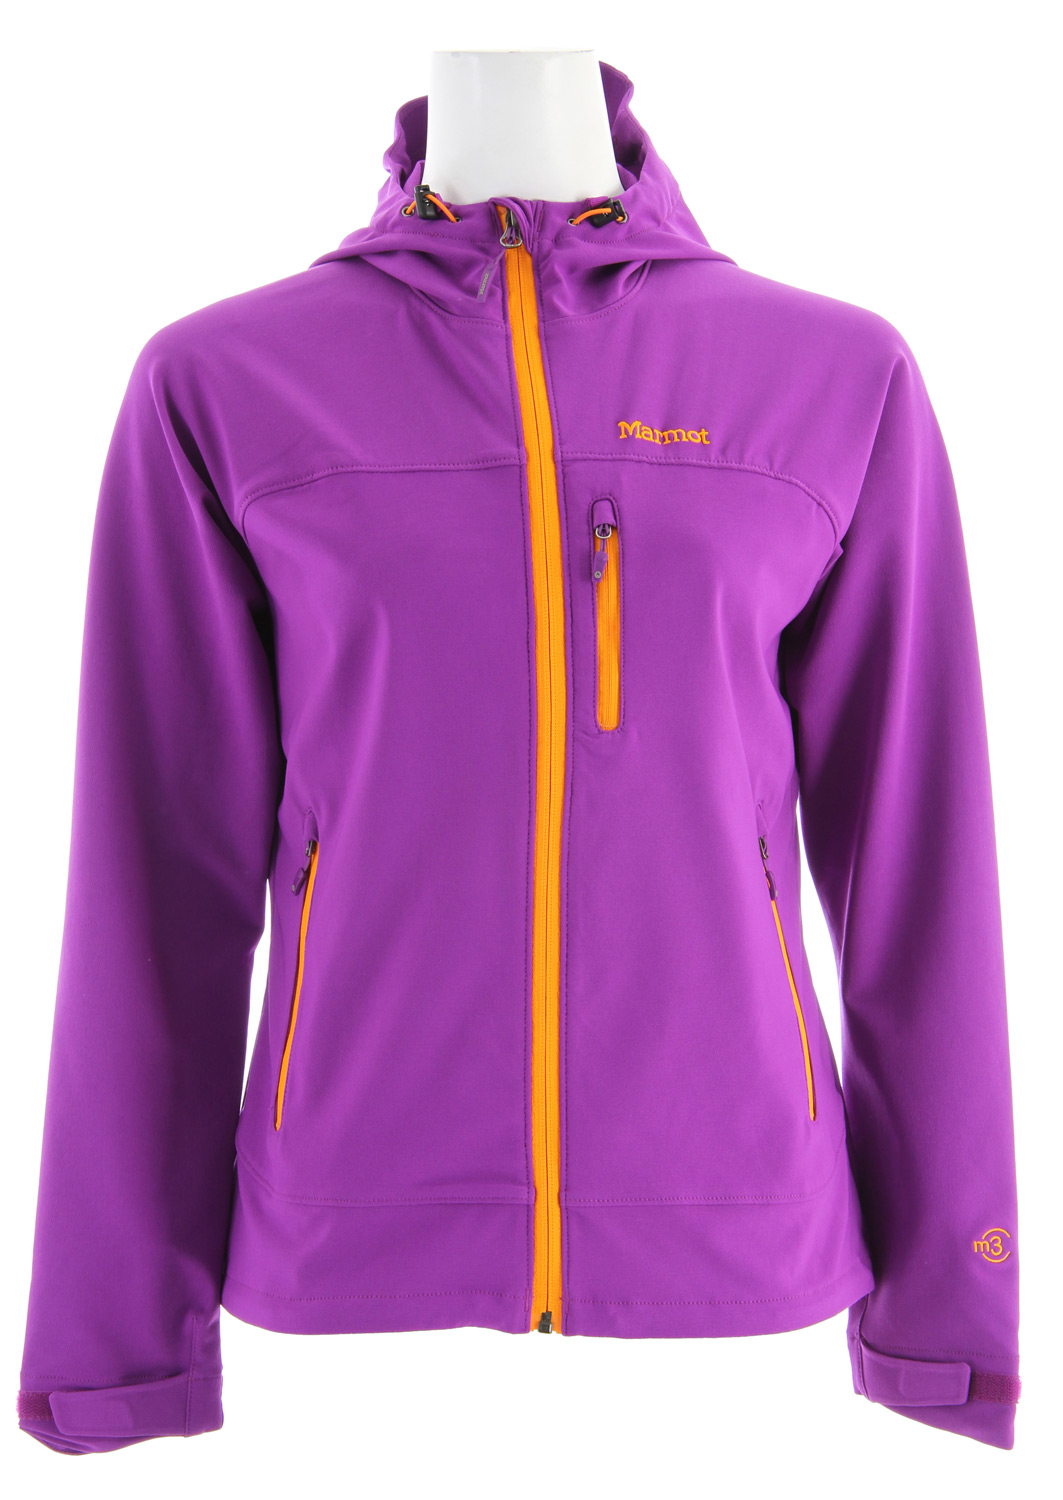 "A perfect layer for spring and fall, when comfort is key, and lightweight softshell performance is just what the doctor ordered. Sized and cut for the female form, with thoughtful features throughout. Handwarmer pockets employ concealed zippers, and reflective logos and cuffs shine brightly on dark nights.* Marmot M3 Softshell * Water Repellent and Breathable - Ideal for Aerobic Activity and Sheds Water * Handwarmer Pockets with Concealed Zippers * Sleeve Pocket with Concealed Zipper * Reflective bound Cuffs * Reflective Logos * Angel-Wing Movement - Allows Full Range of Motion in Arms so Jacket Doesn't Ride Up * 24 1/2"" Center Back Length for Size Medium * Center Back Length: 24.5in / 62.2cm * Weight: 10.2 oz / 289.2 g * Main Material: Softshell Double Weave 90% Polyester/10% Elastane Stretch 7.3 oz/yd - $83.95"